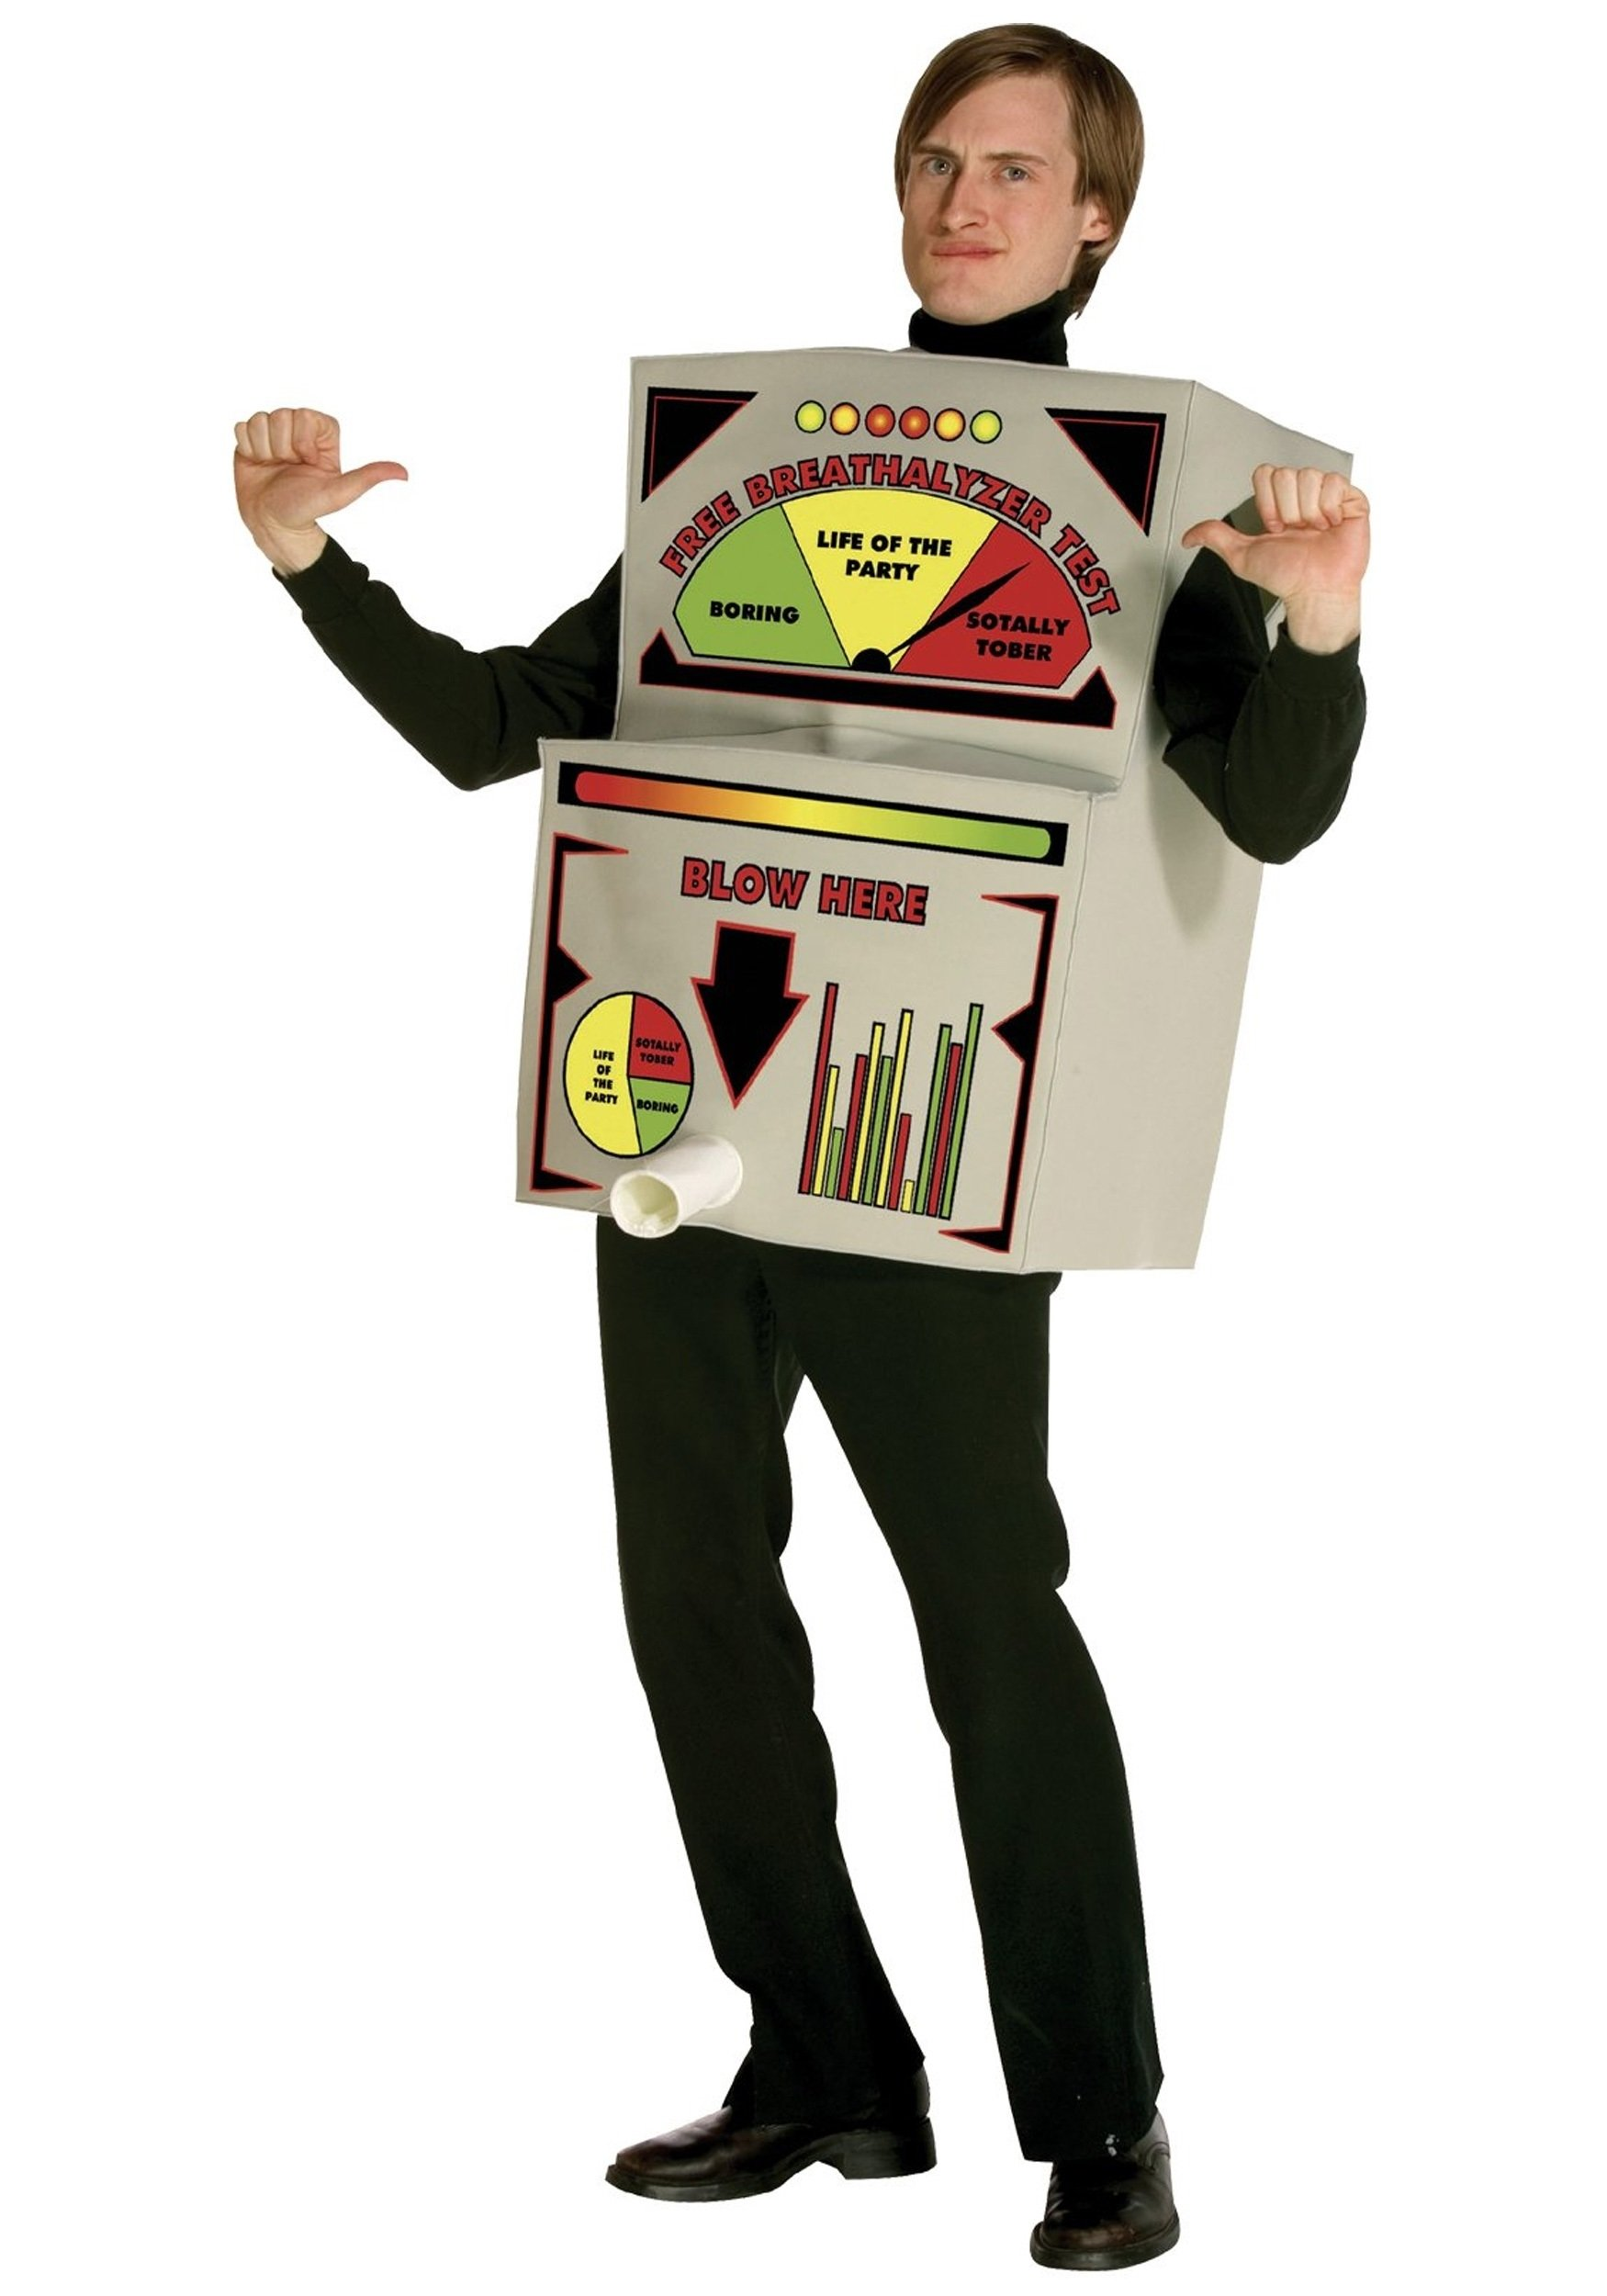 10 Lovable Unique Women Halloween Costume Ideas breathalyzer costume funny halloween costume ideas for men 1 2021